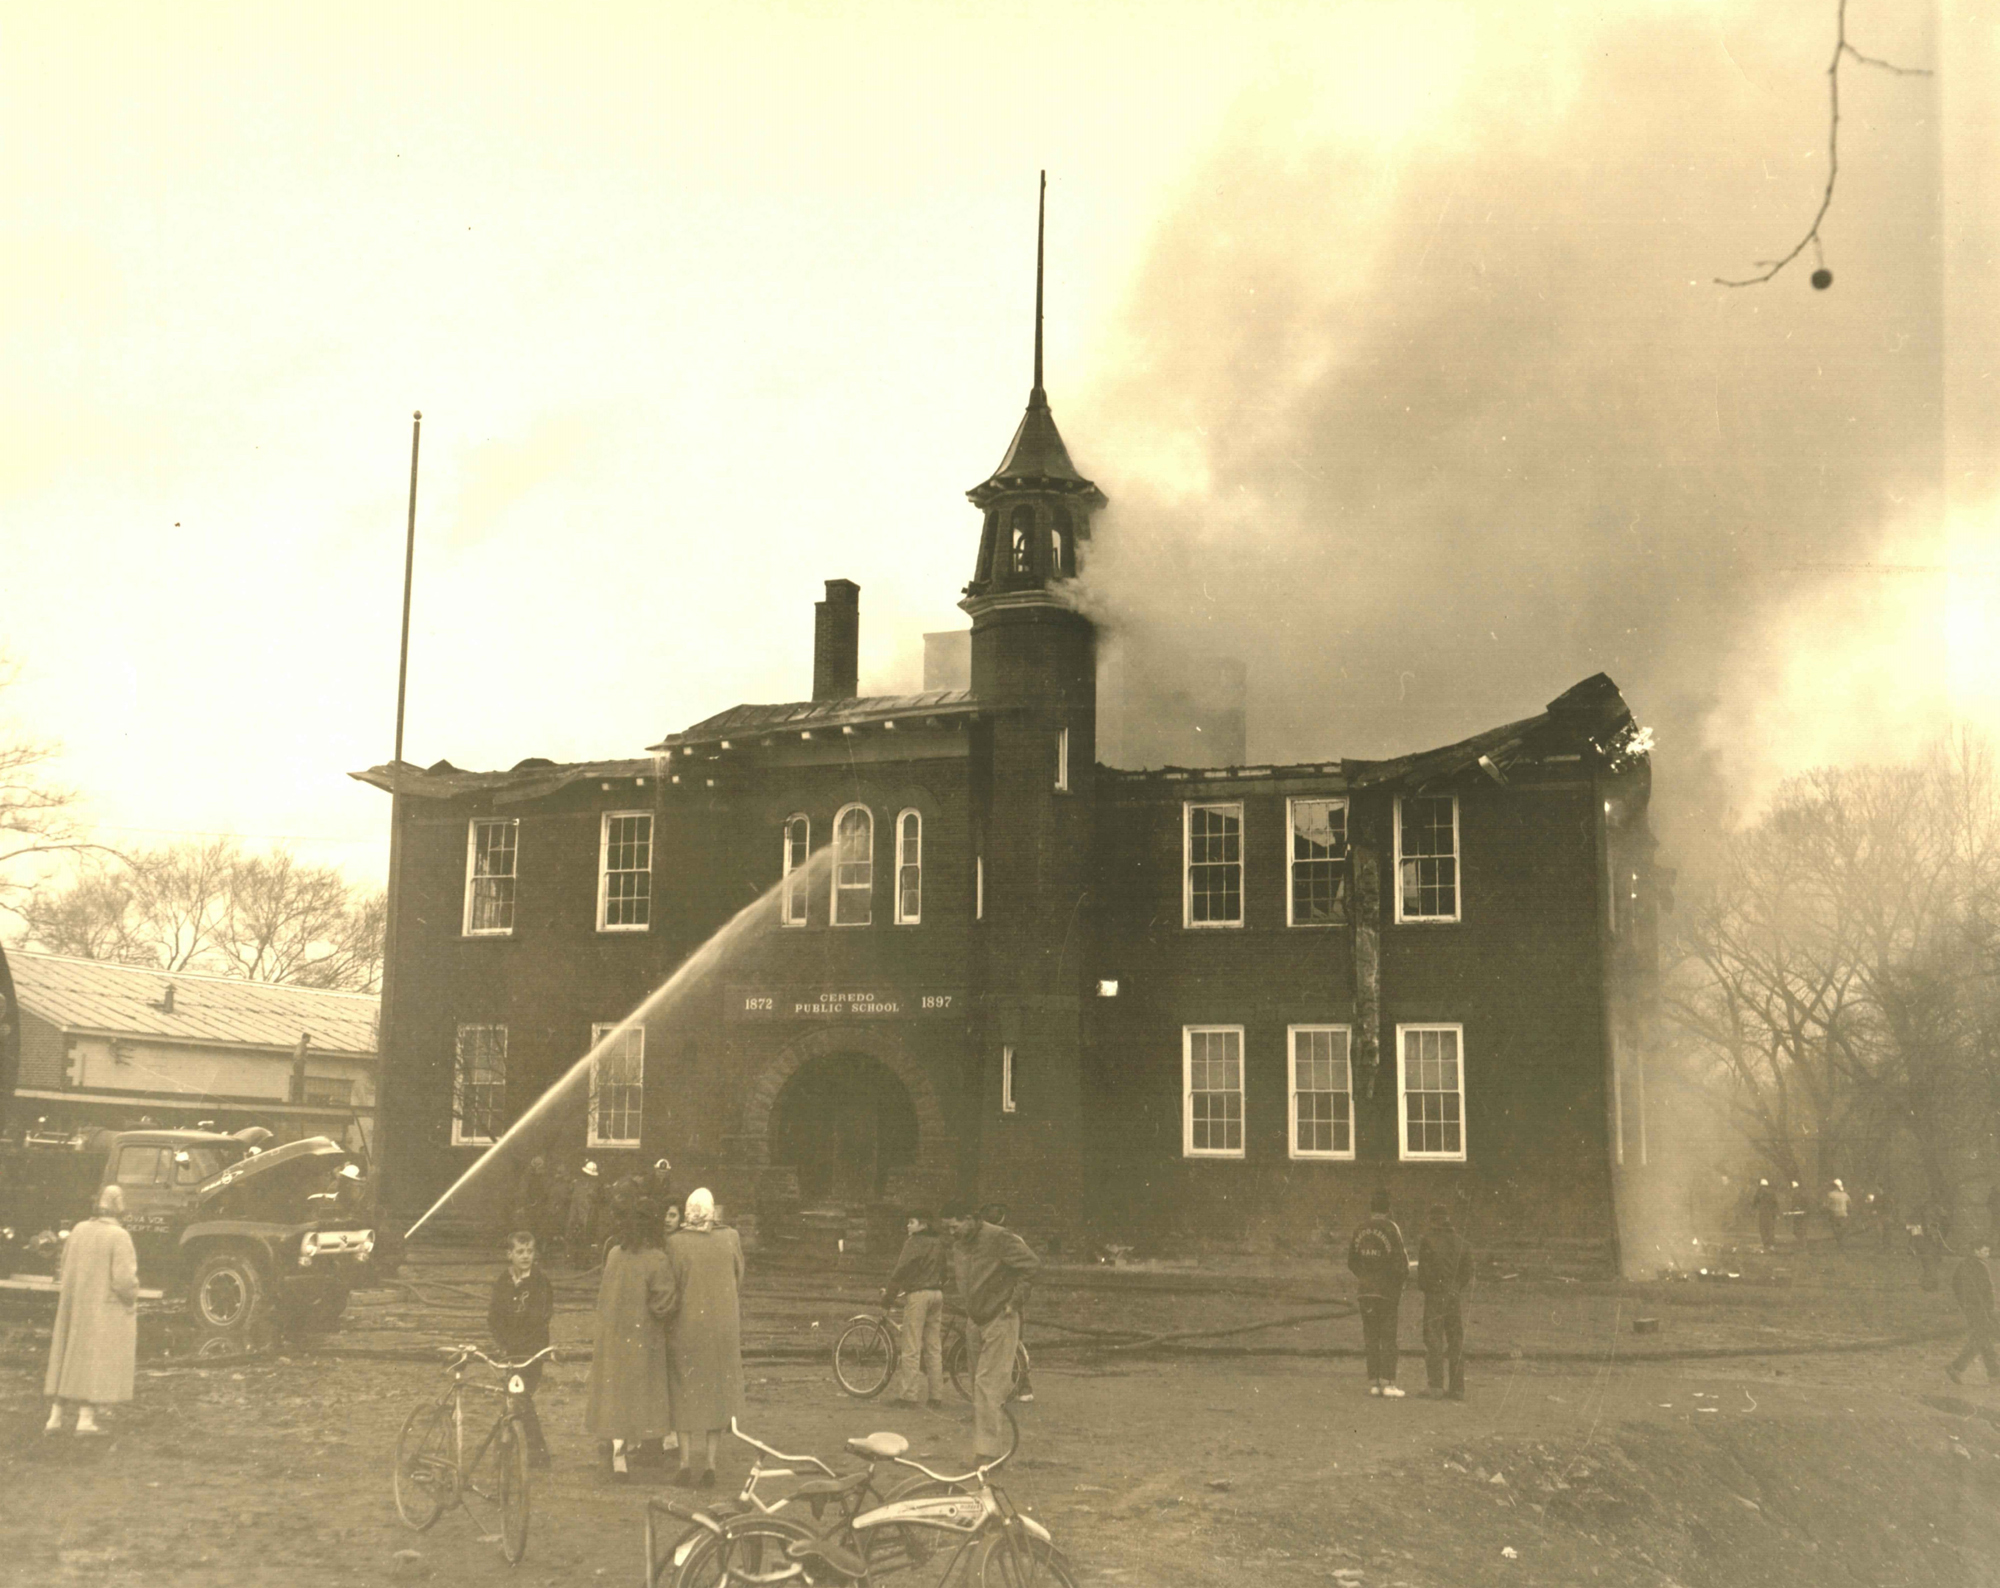 The second building was destroyed in a dramatic fire on Valentine's Day 1957, shortly after students had left for the day. Image courtesy of the Ceredo Historical Society Museum.